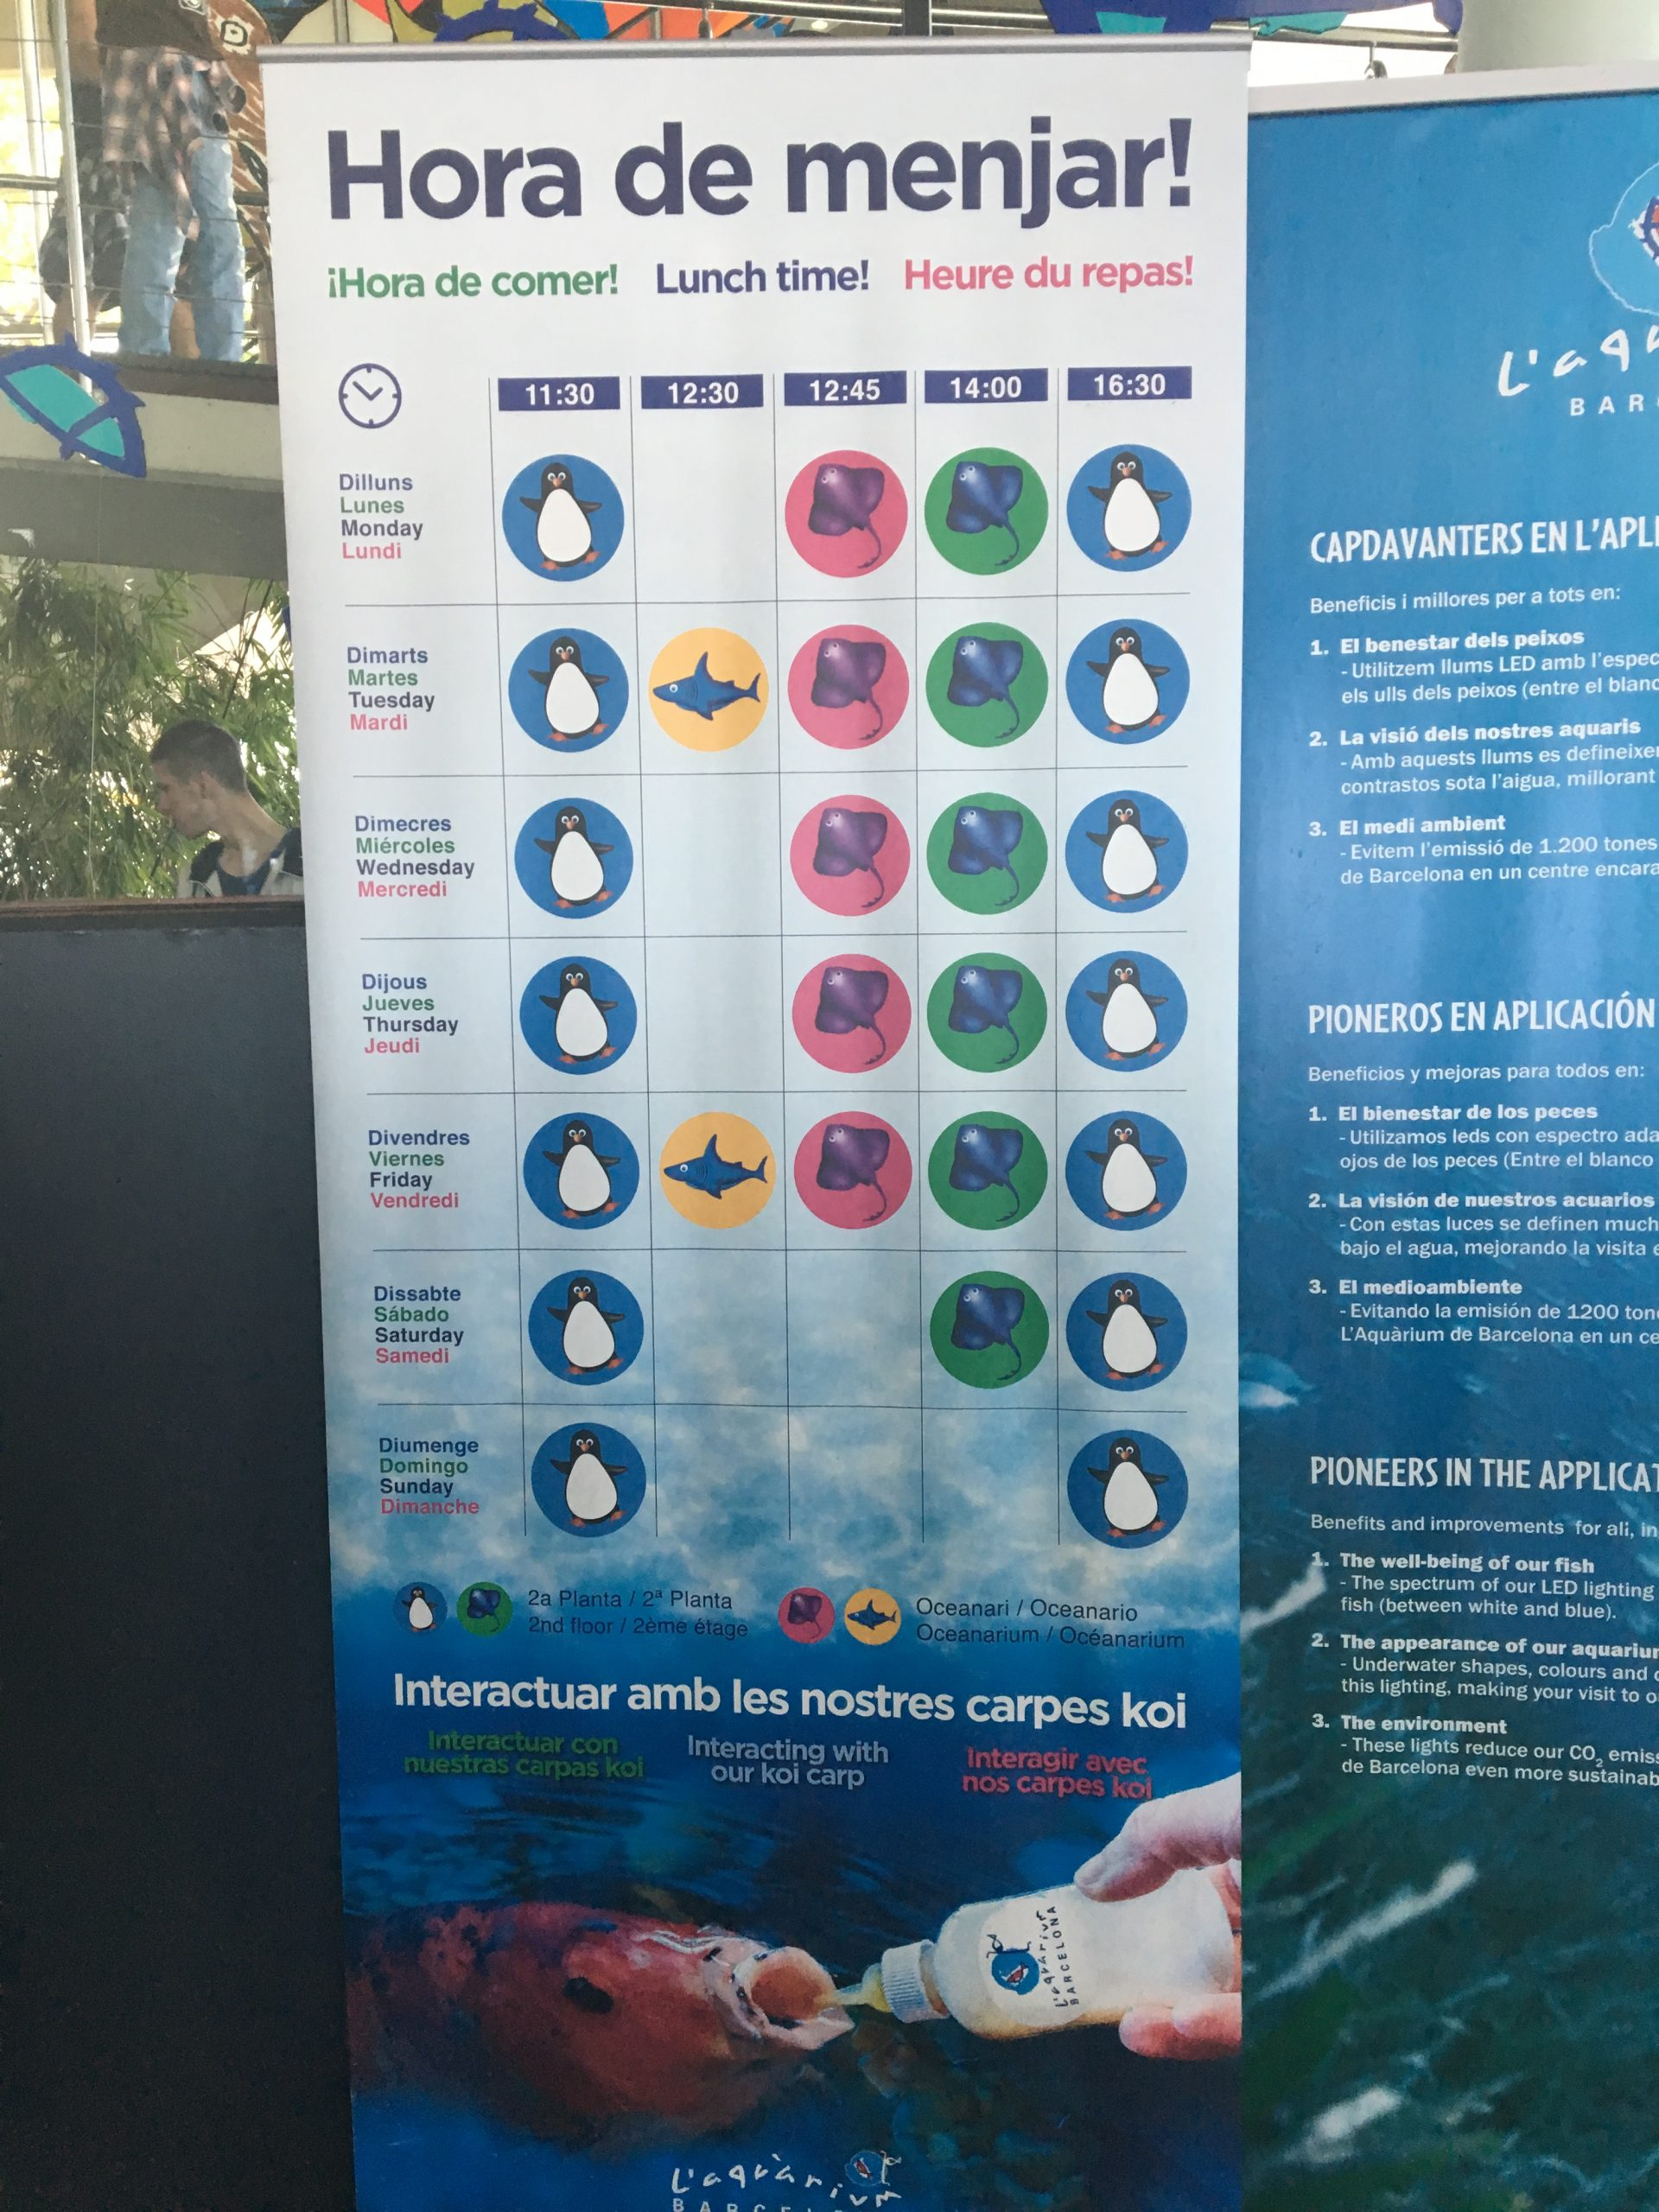 Aquarium de Barcelone-planning nourriture des animaux